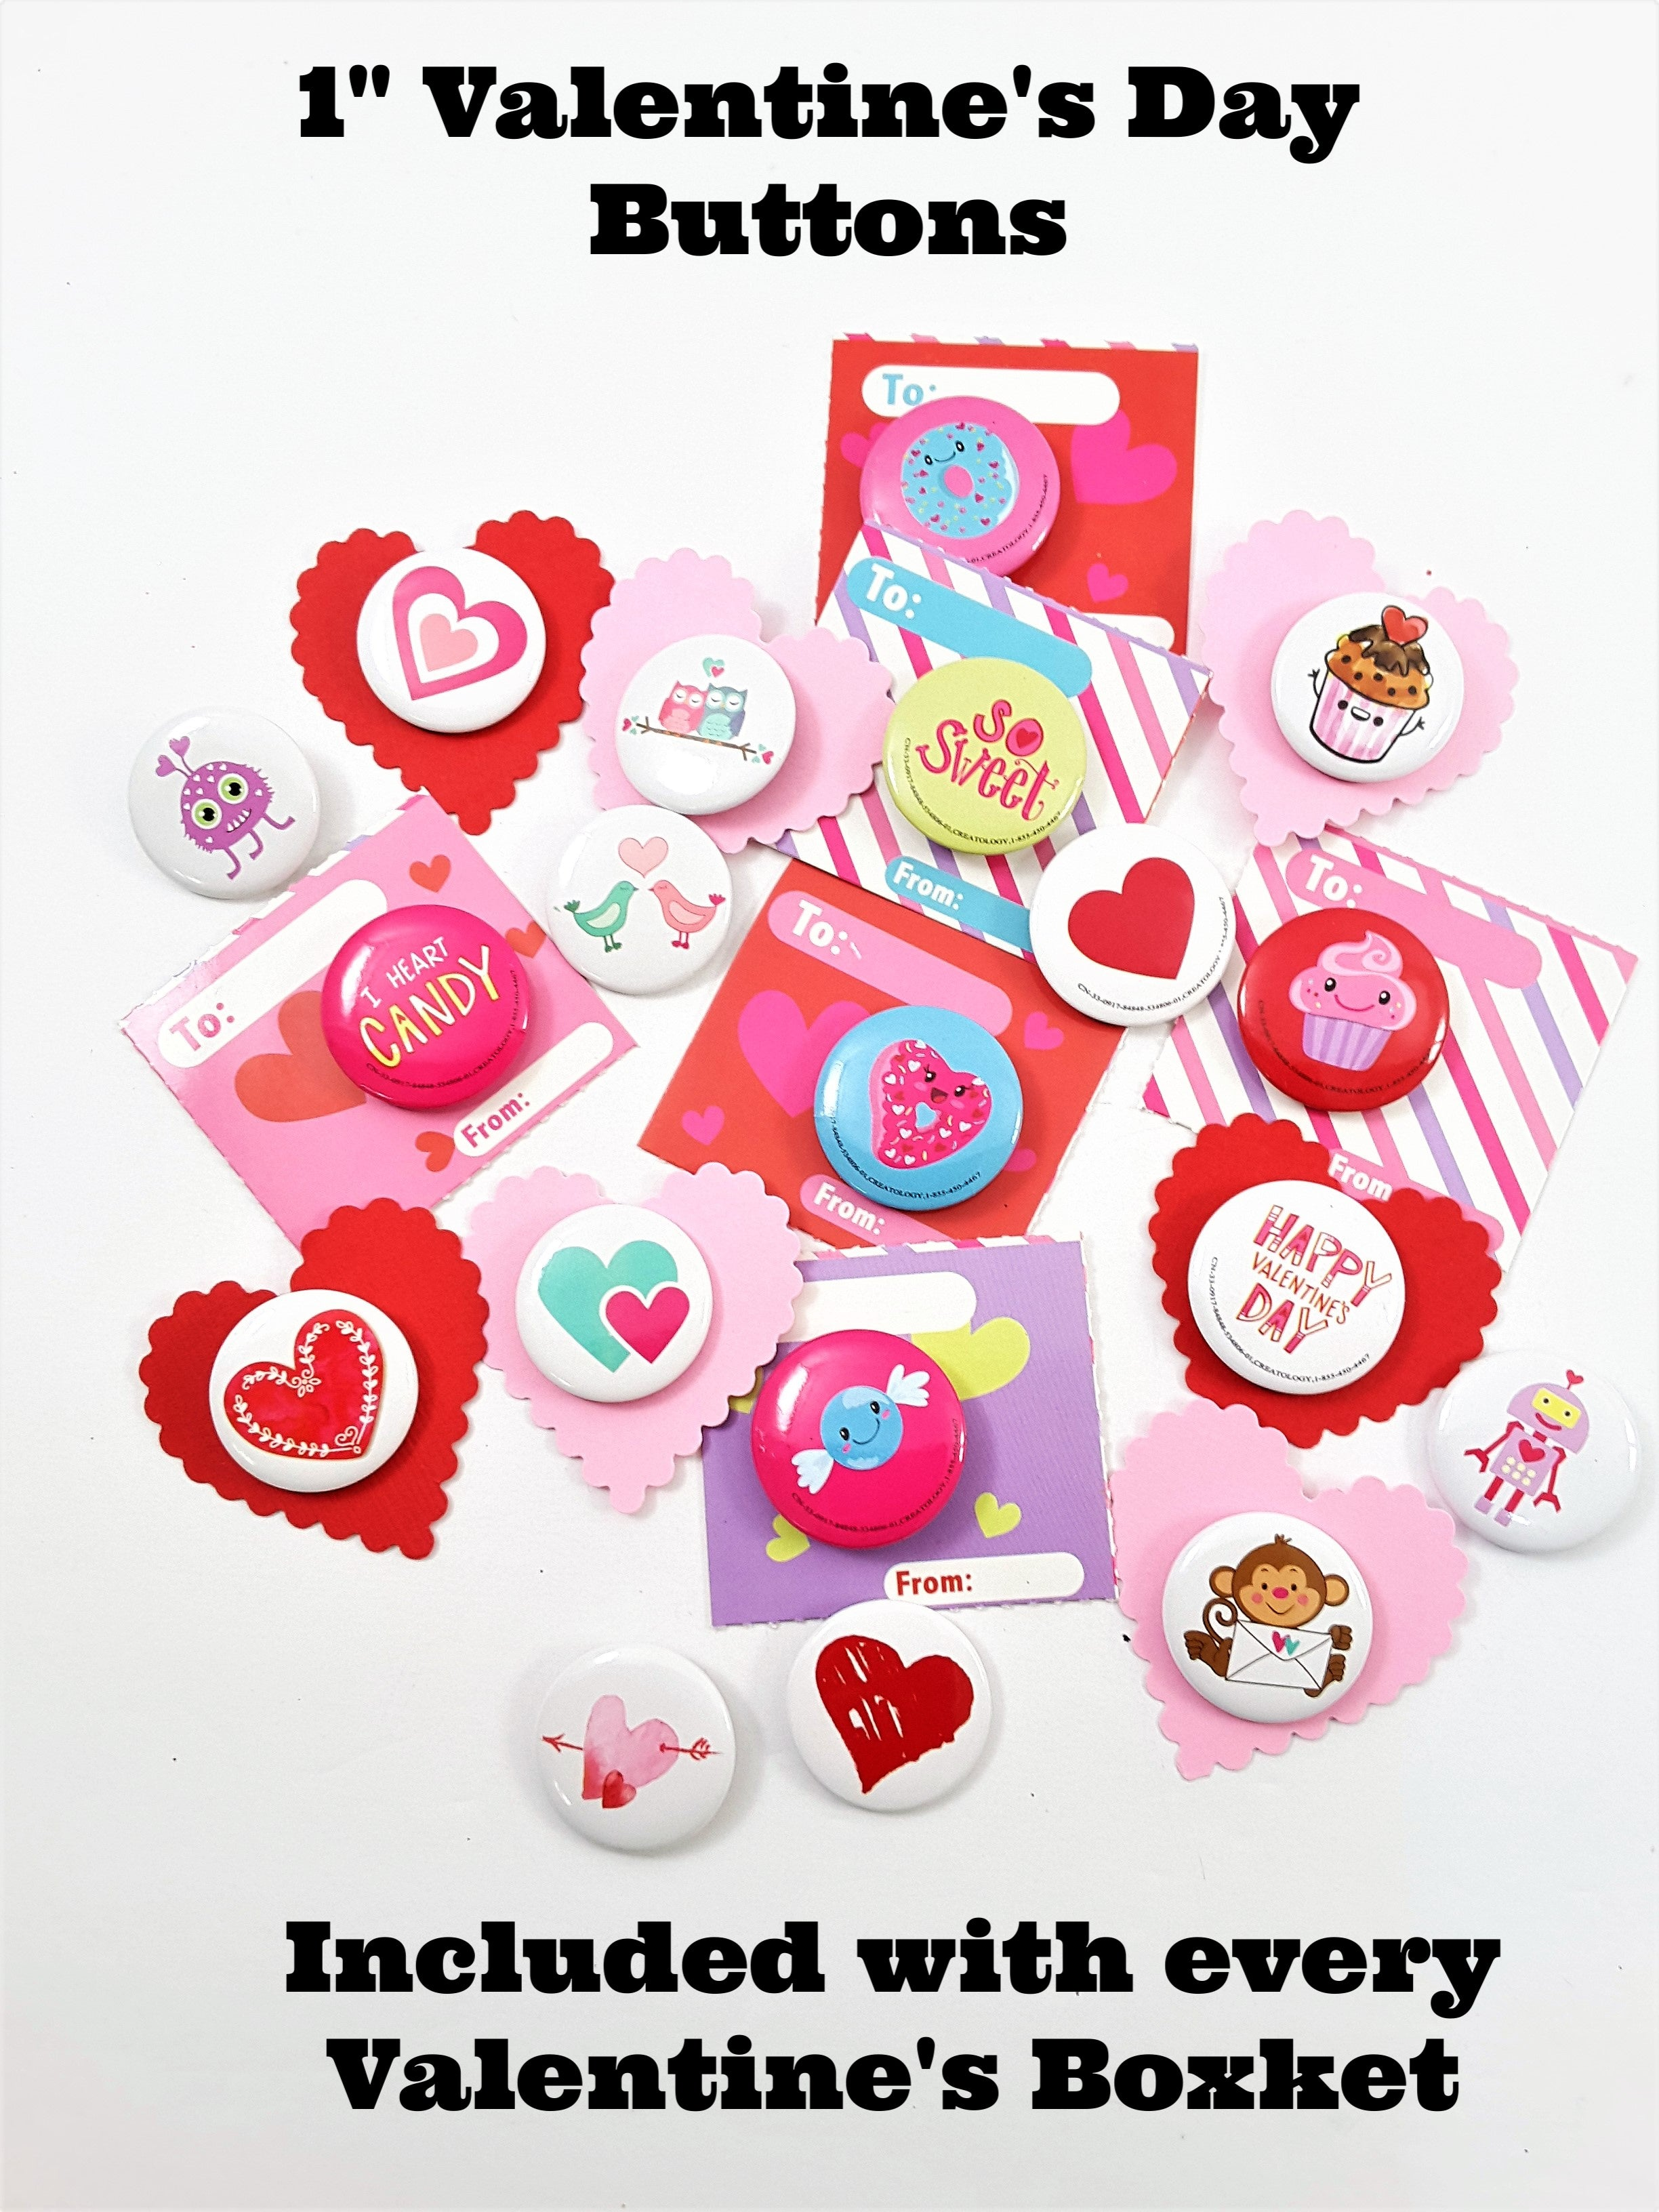 VALENTINE'S DAY 3D GREETING CARD - PINK ROSE HEART - TheLastWordBish.com